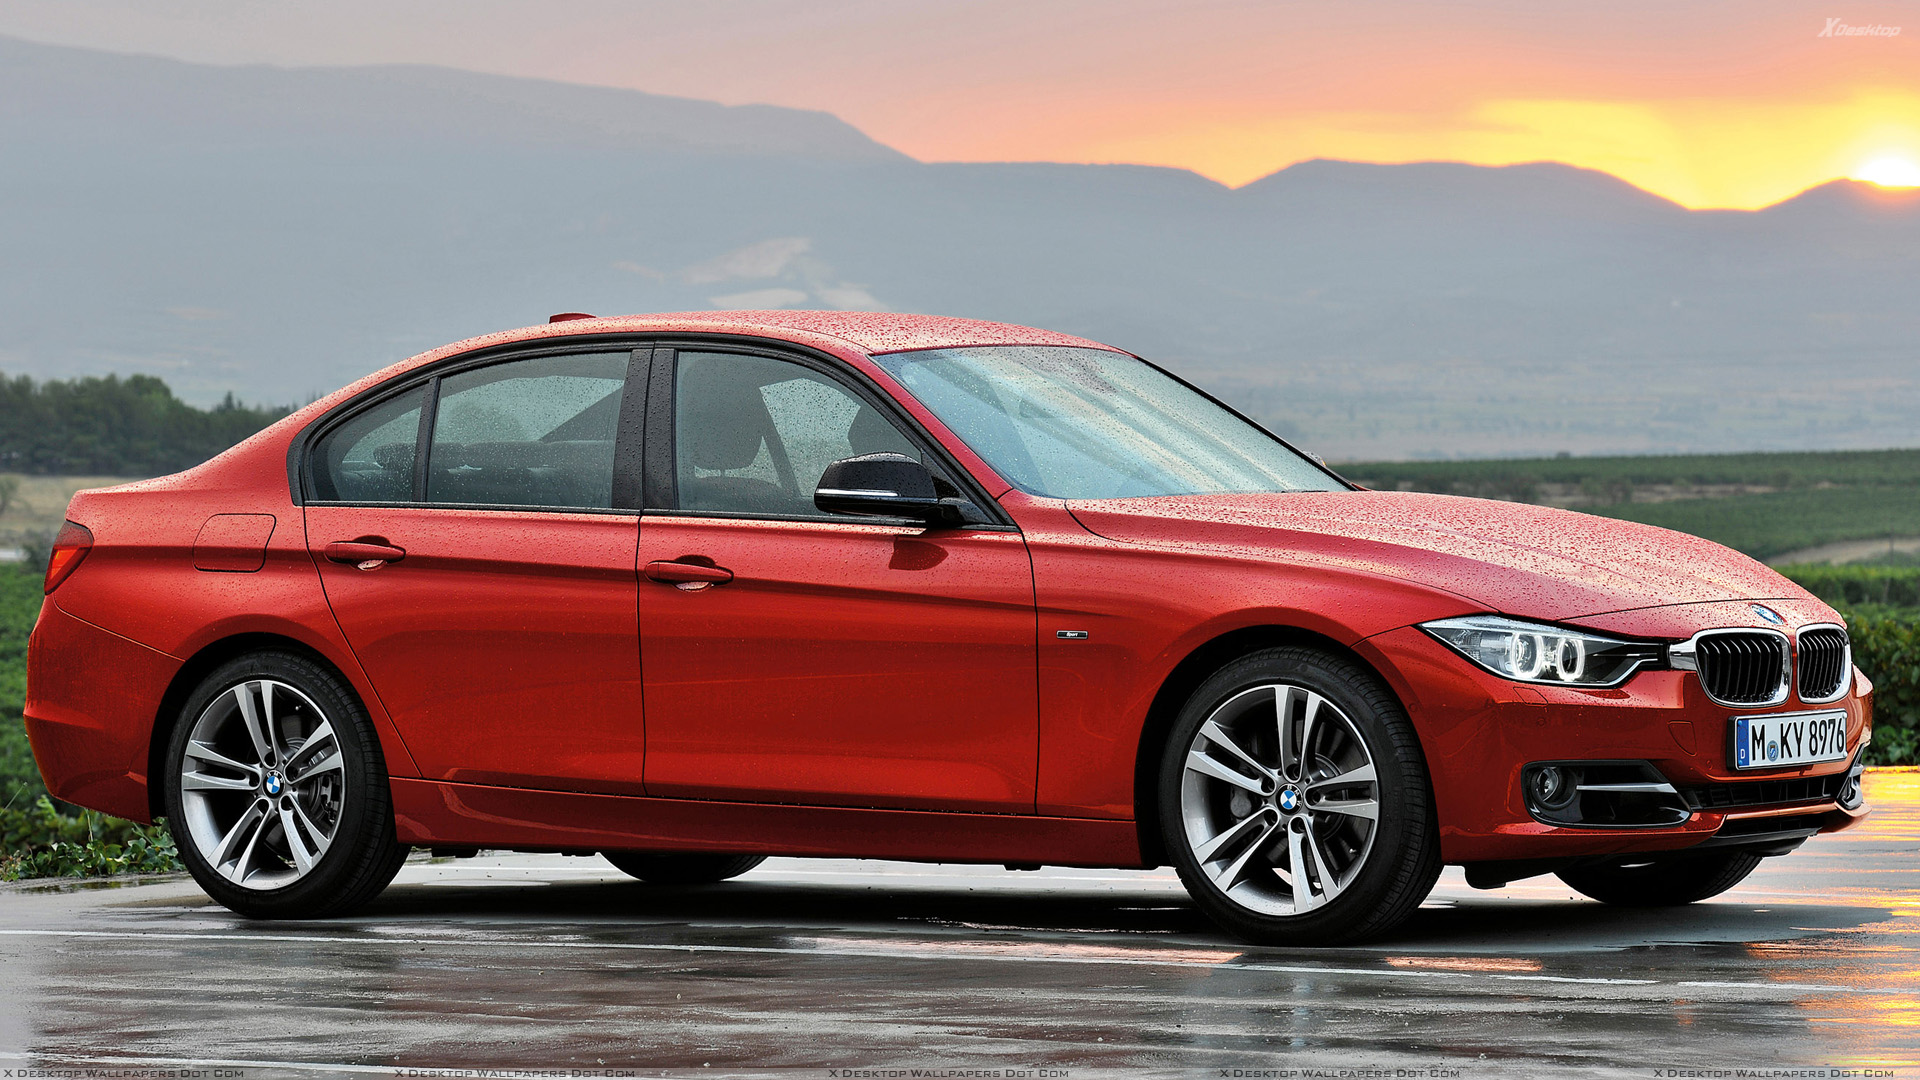 2012 bmw 3 series sedan f30 in red after rain photoshoot wallpaper. Black Bedroom Furniture Sets. Home Design Ideas